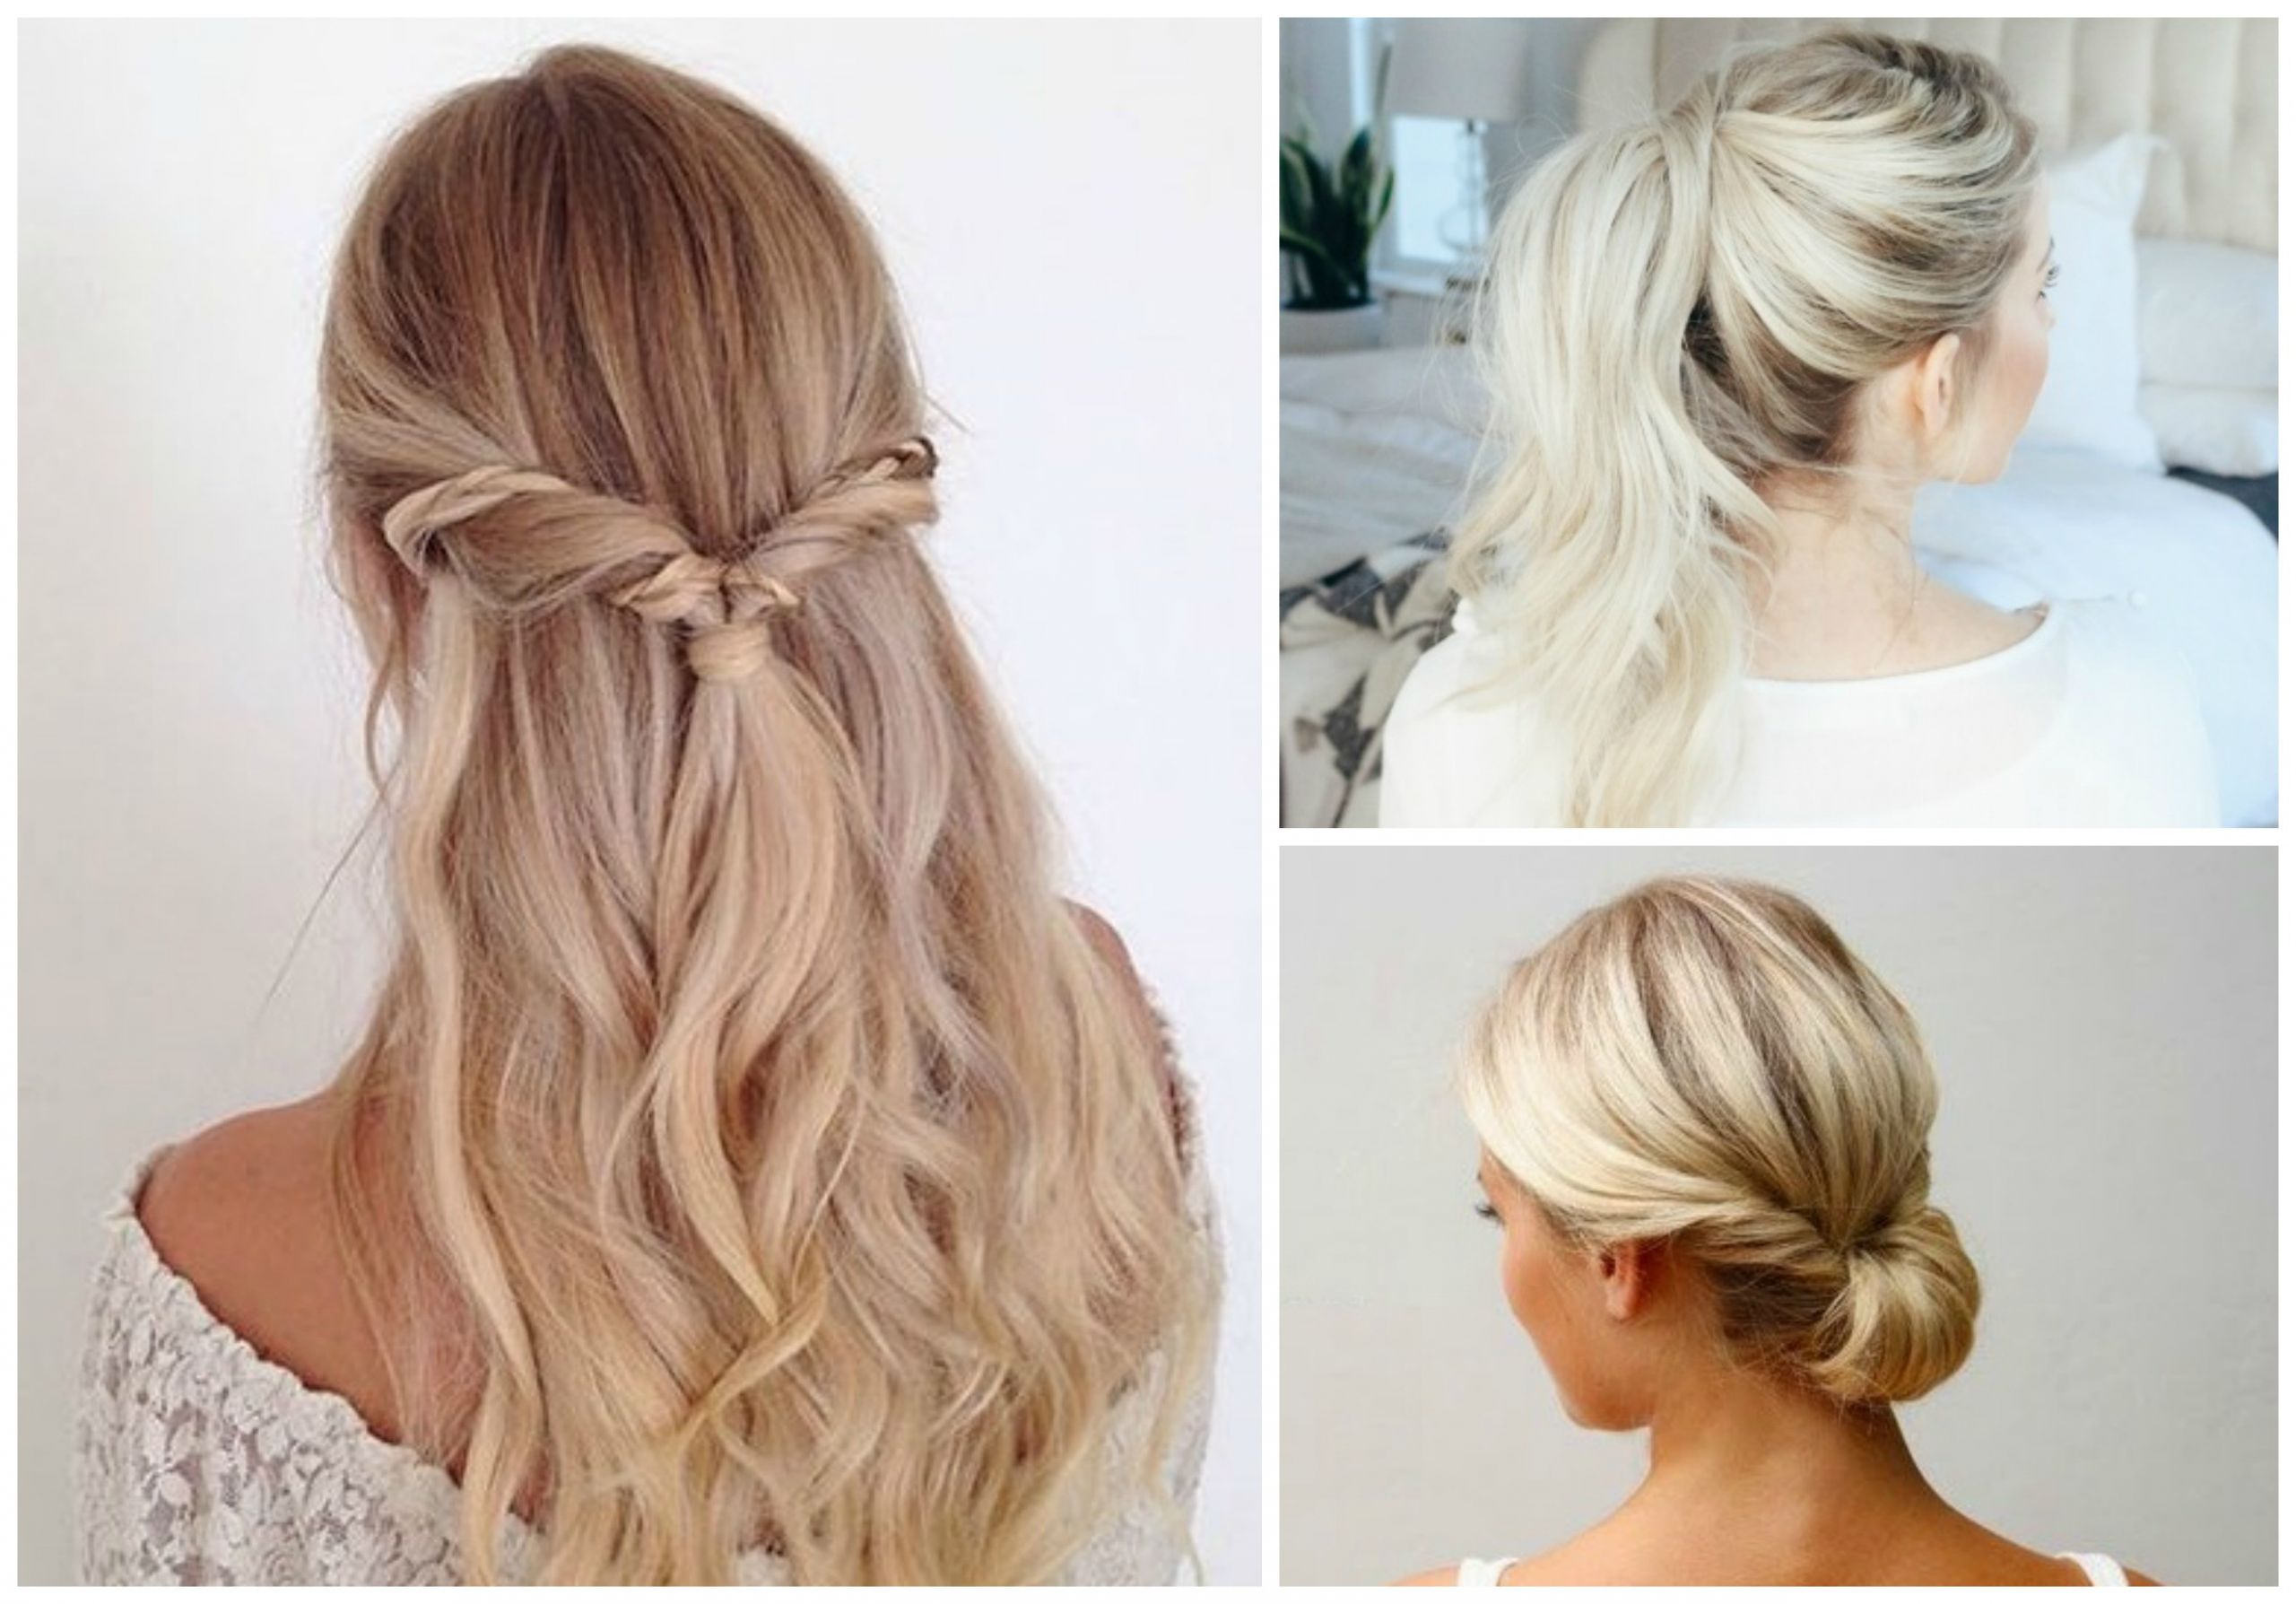 Easy Everyday Hairstyles  11 Super Easy Hairstyles for Everyday Life